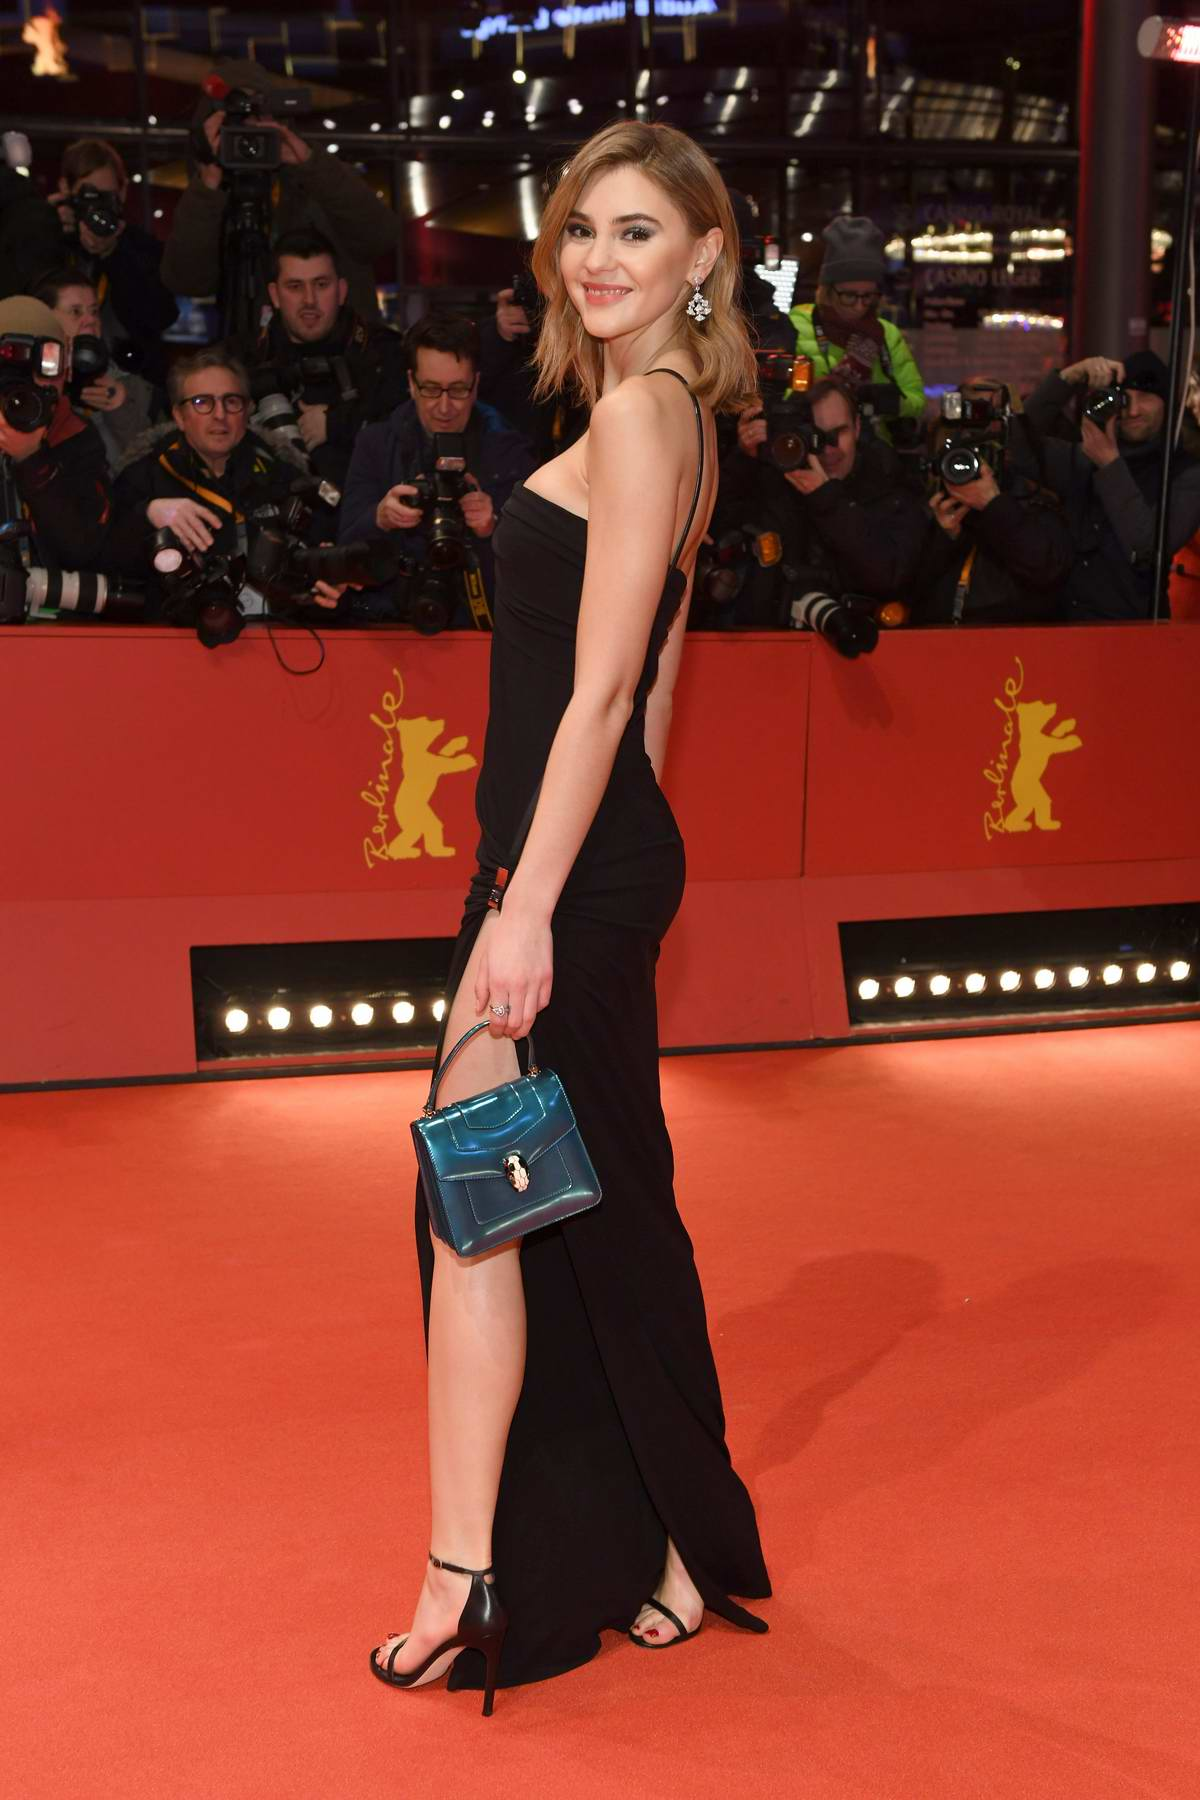 Stefanie Giesinger attends 'By the Grace of God' Premiere during the 69th Berlin International Film Festival in Berlin, Germany